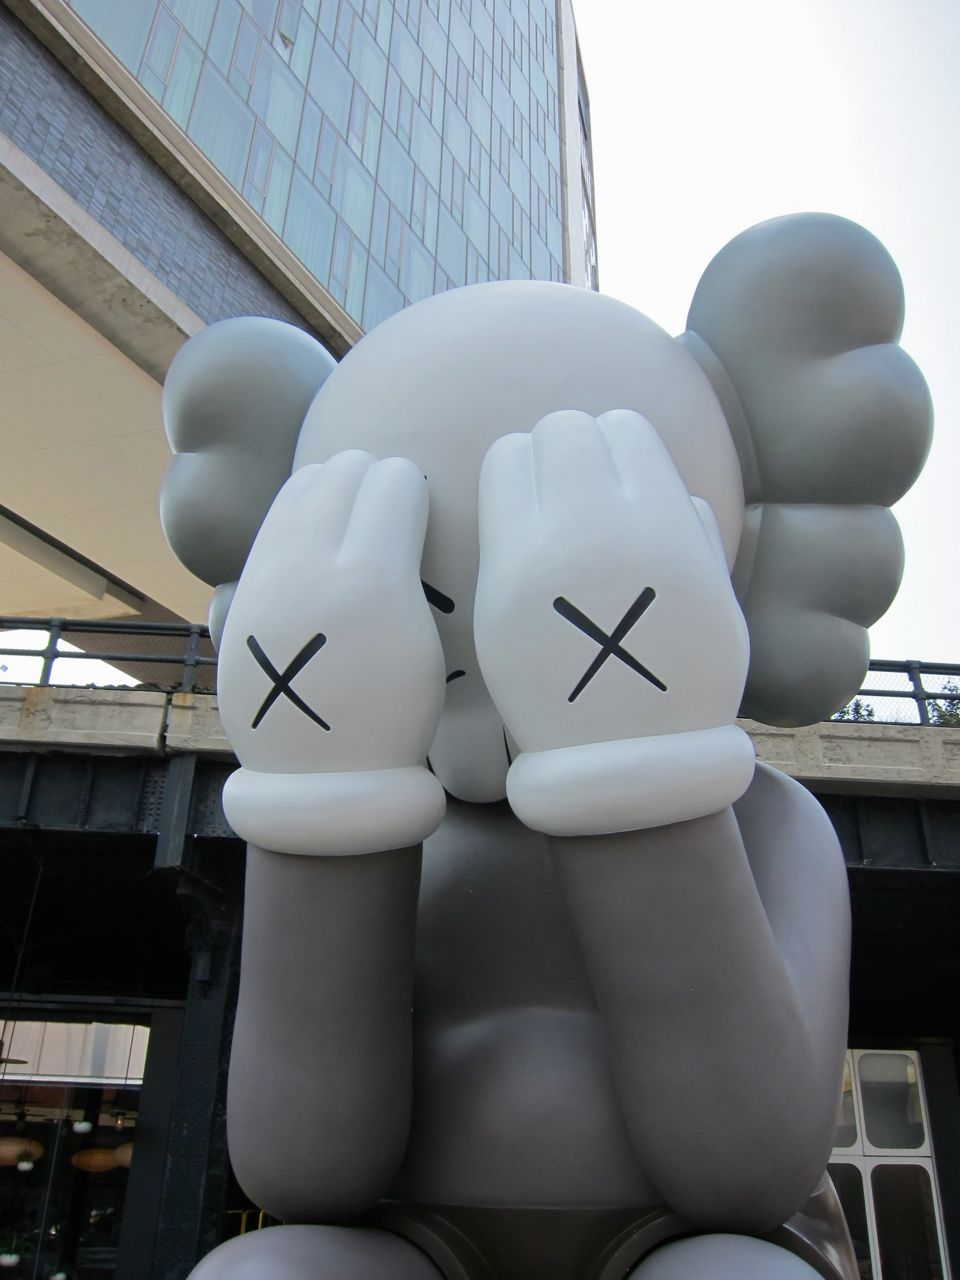 Kaws Standard NY Companion Passing AM 12